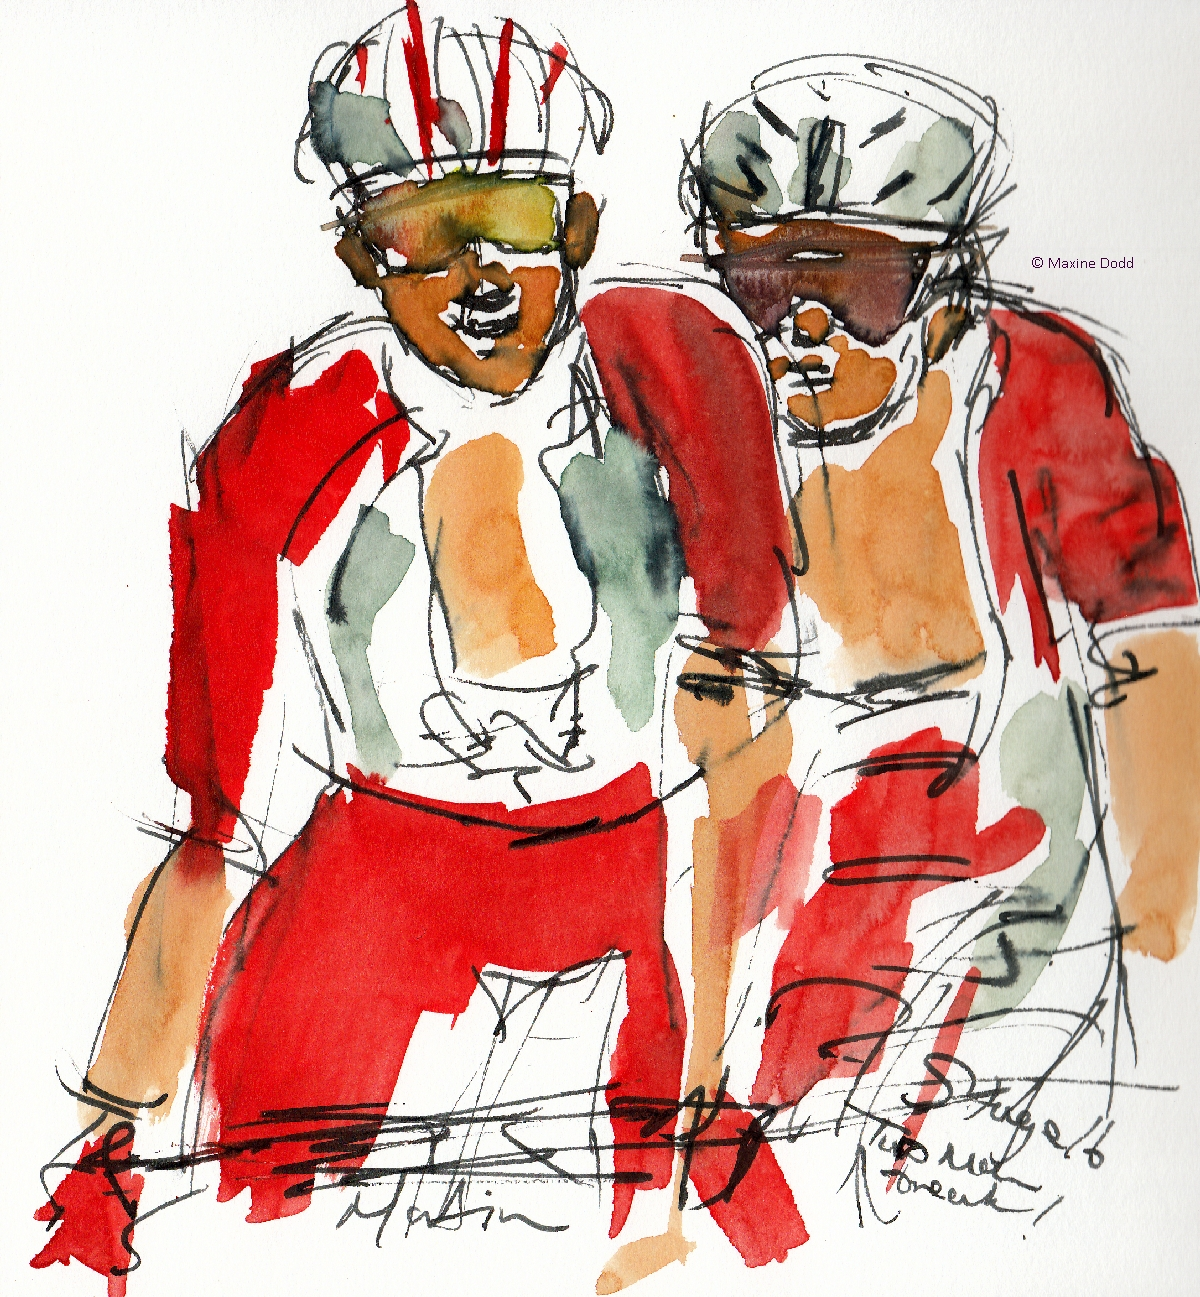 Two-man break, watercolour, pen and ink by Maxine Dodd